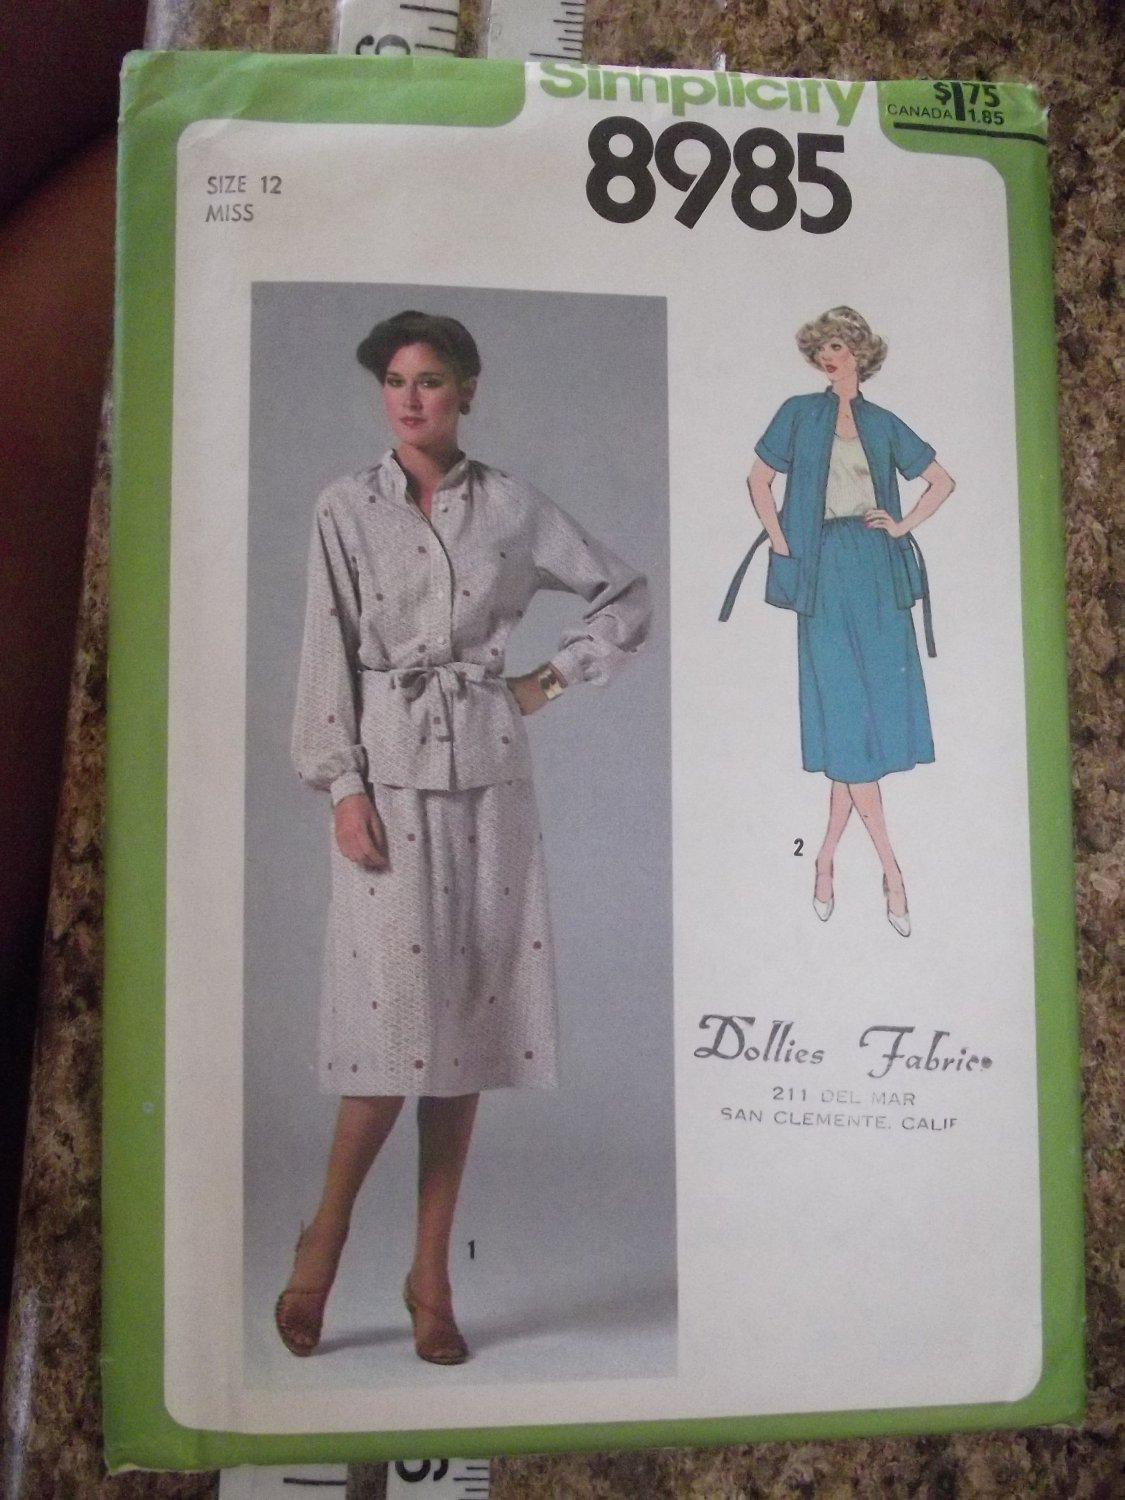 Vintage Simplicity pattern 8985 sz 12 from 1979 Uncut